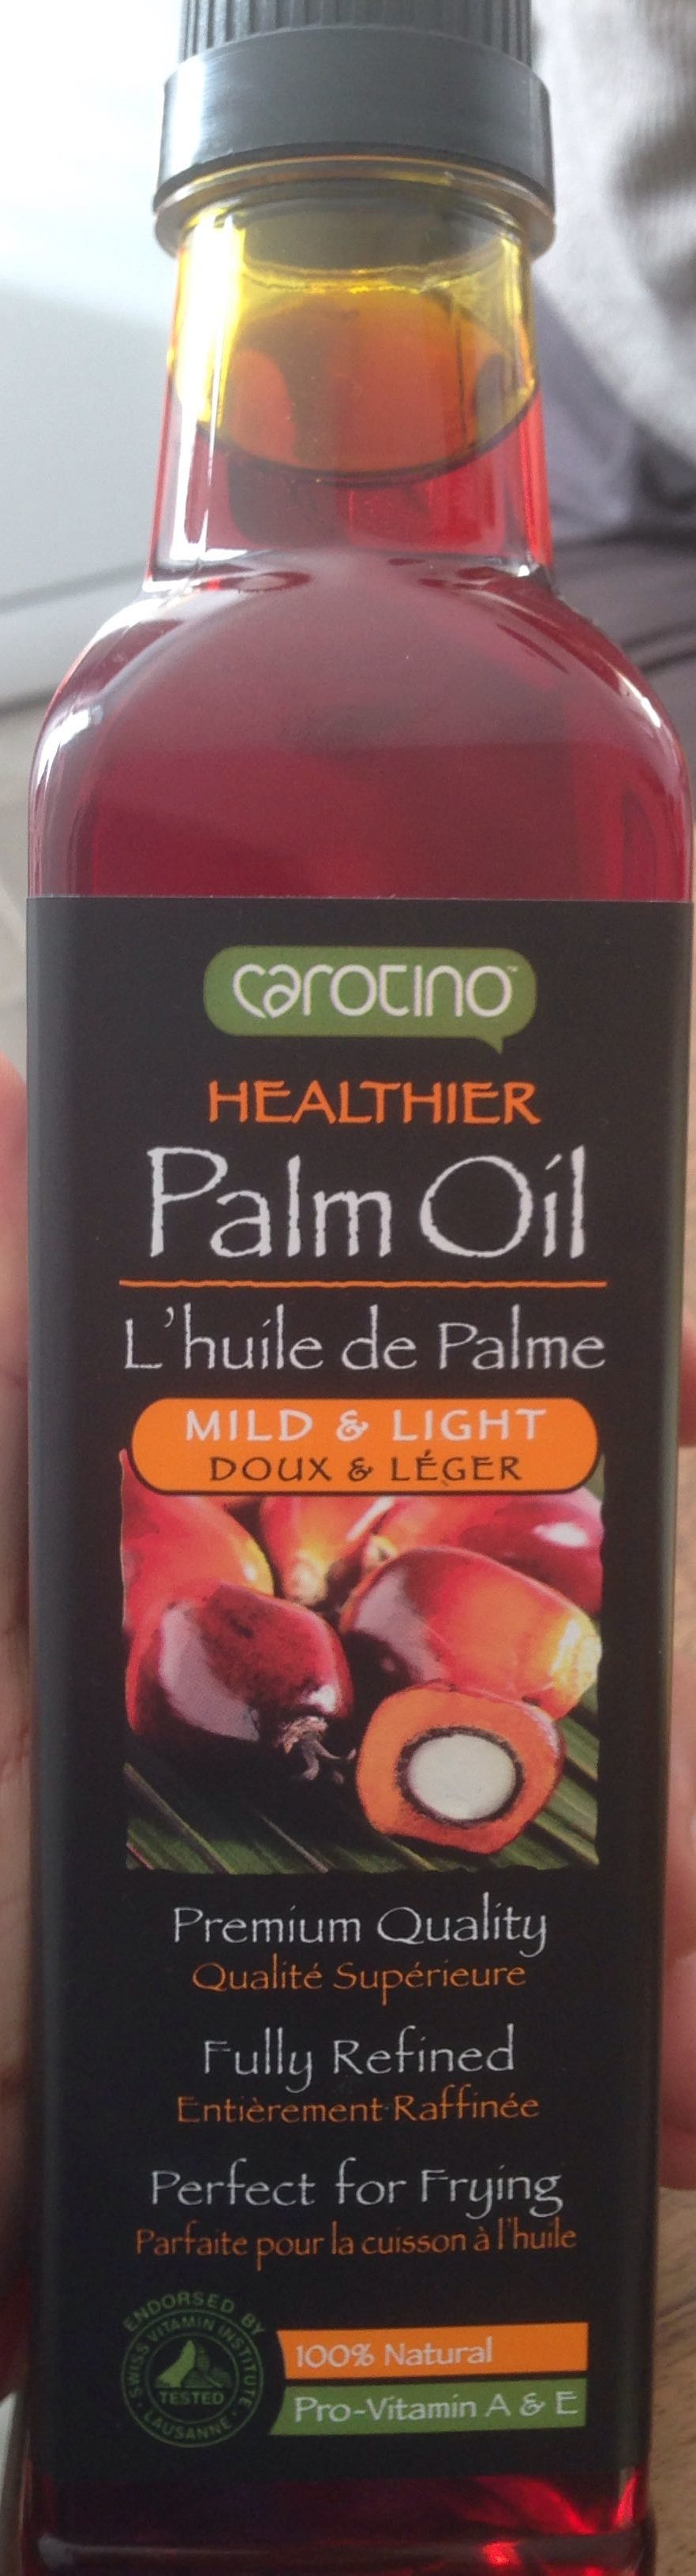 healtier palm oil l 39 huile de palme carotino 500 ml. Black Bedroom Furniture Sets. Home Design Ideas